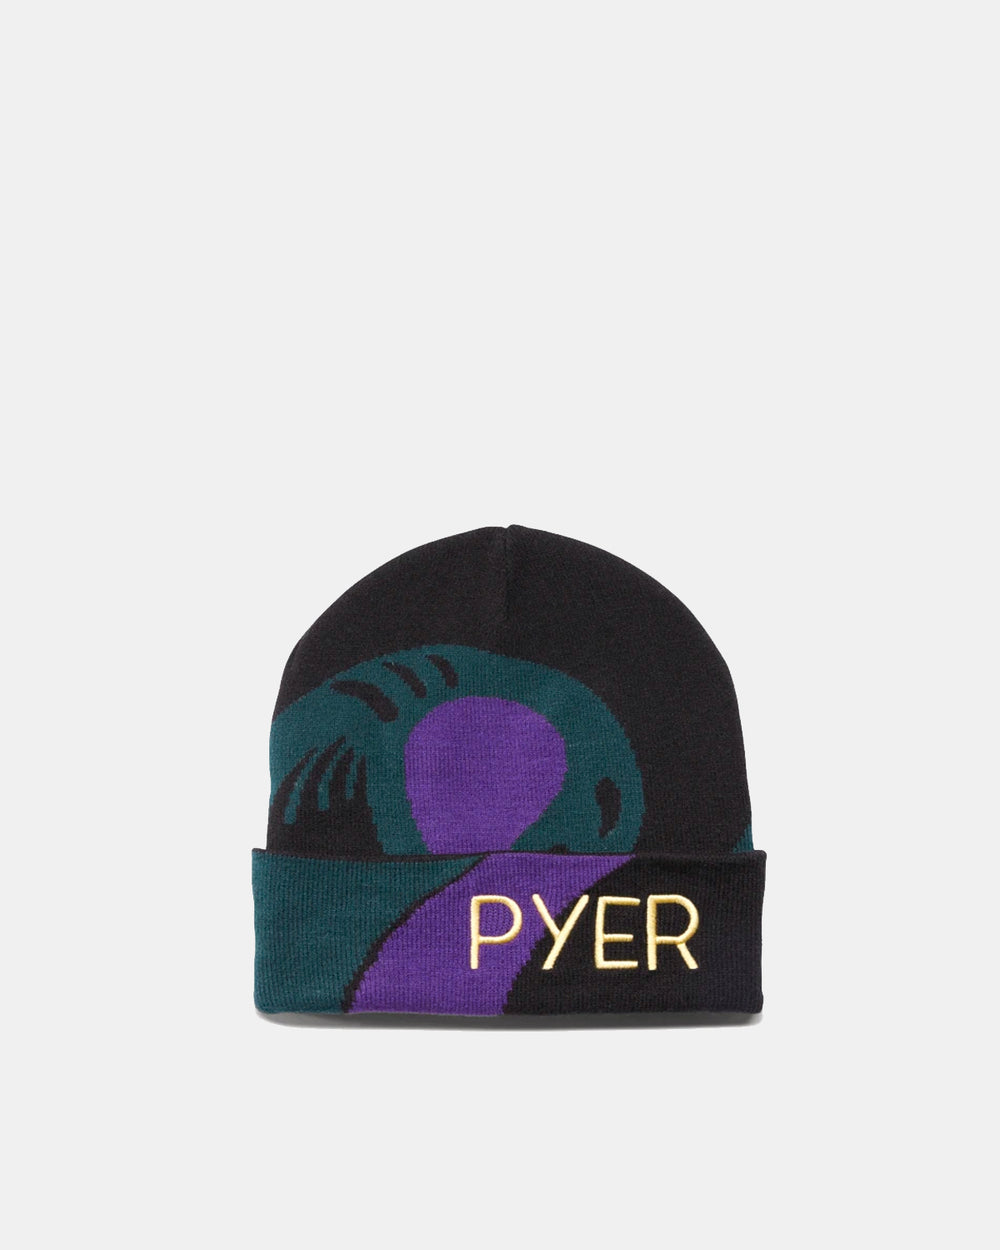 Reebok - Pyer Moss Beanie (Black | Fierce Gold)